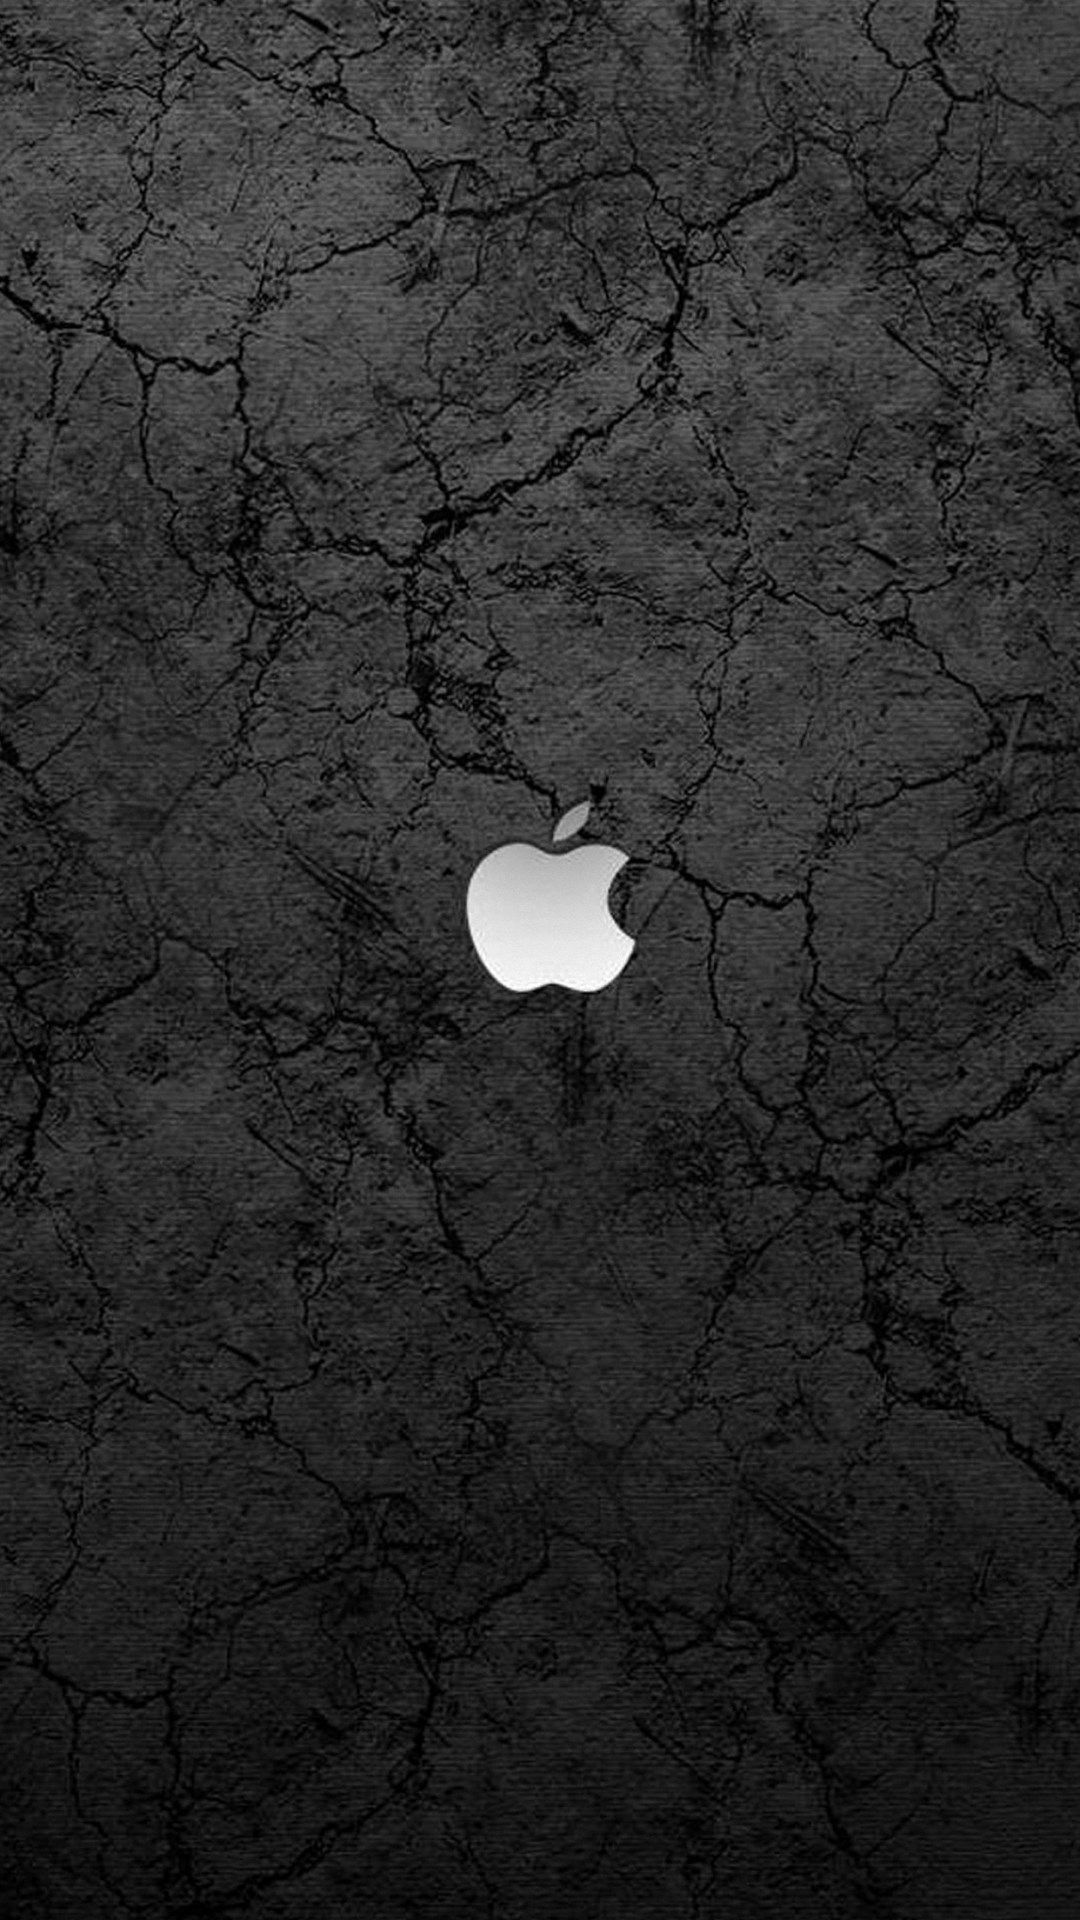 free black iphone backgrounds 1080x1920 Apple wallpaper